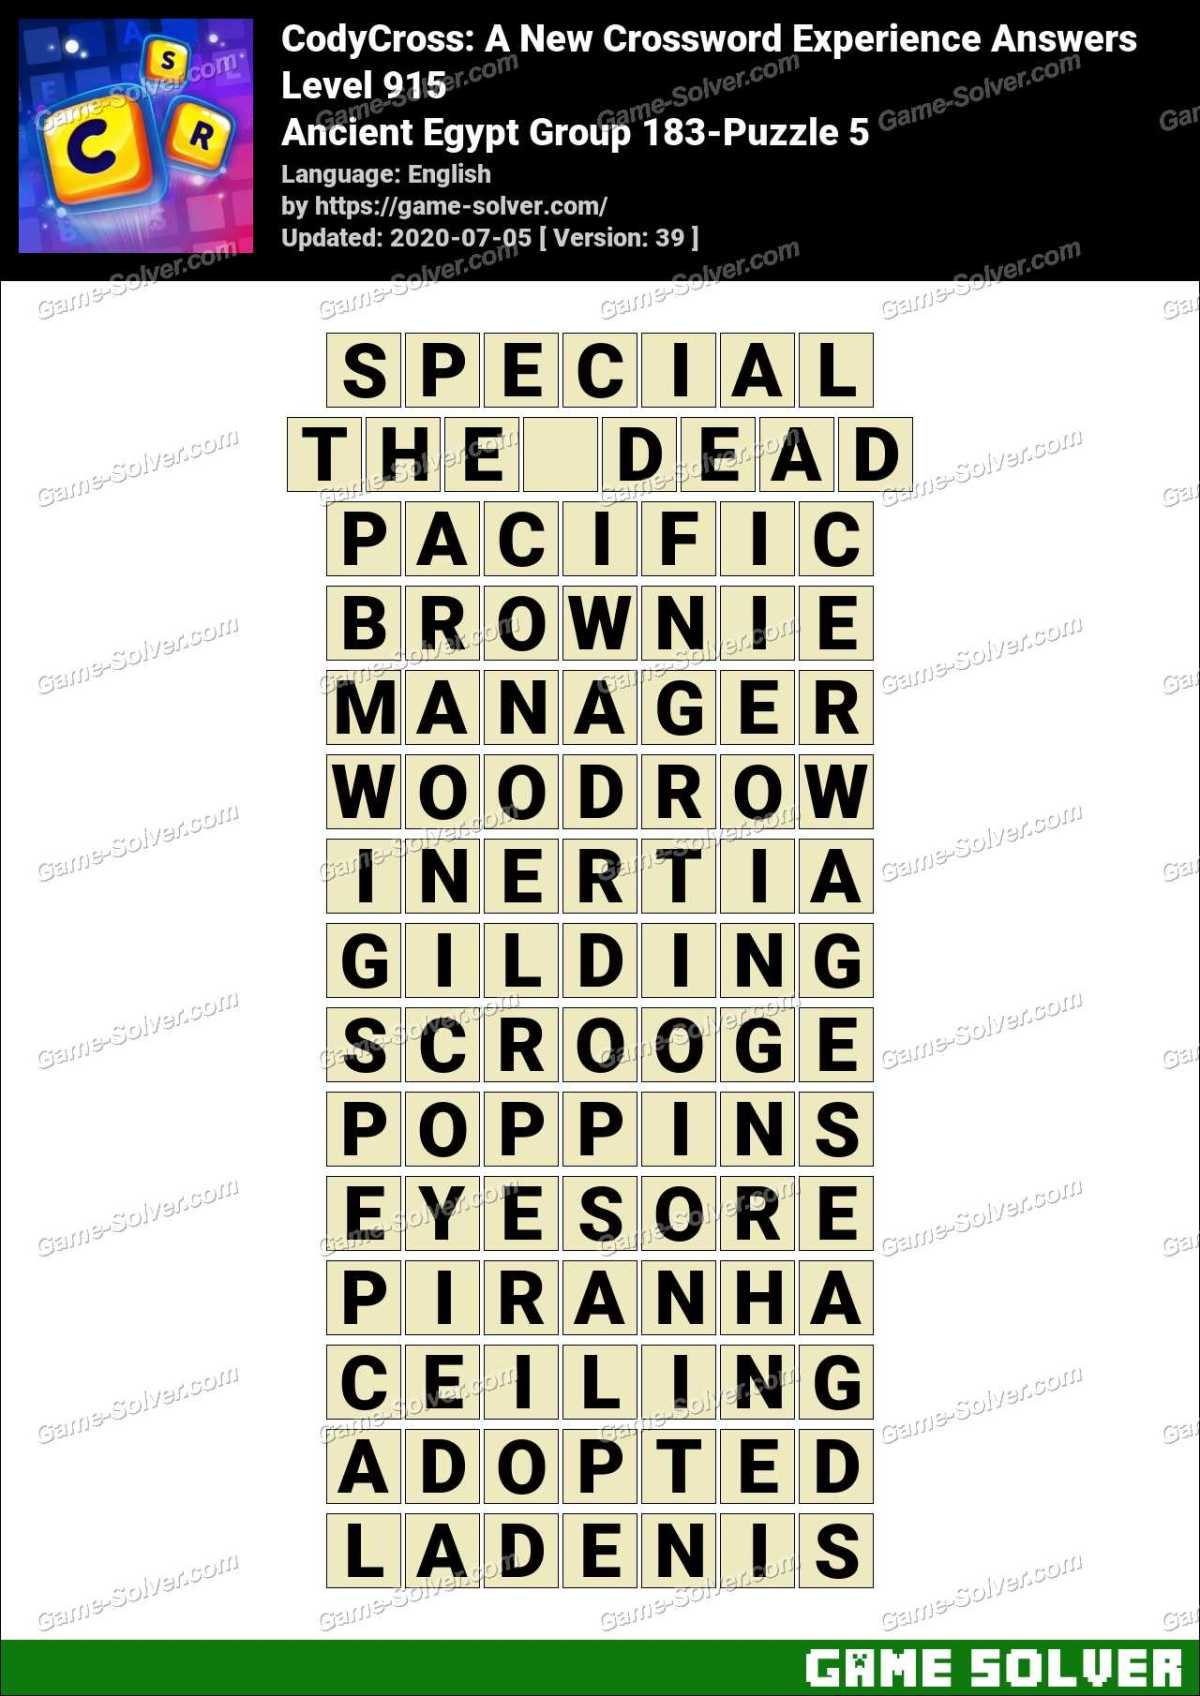 CodyCross Ancient Egypt Group 183-Puzzle 5 Answers